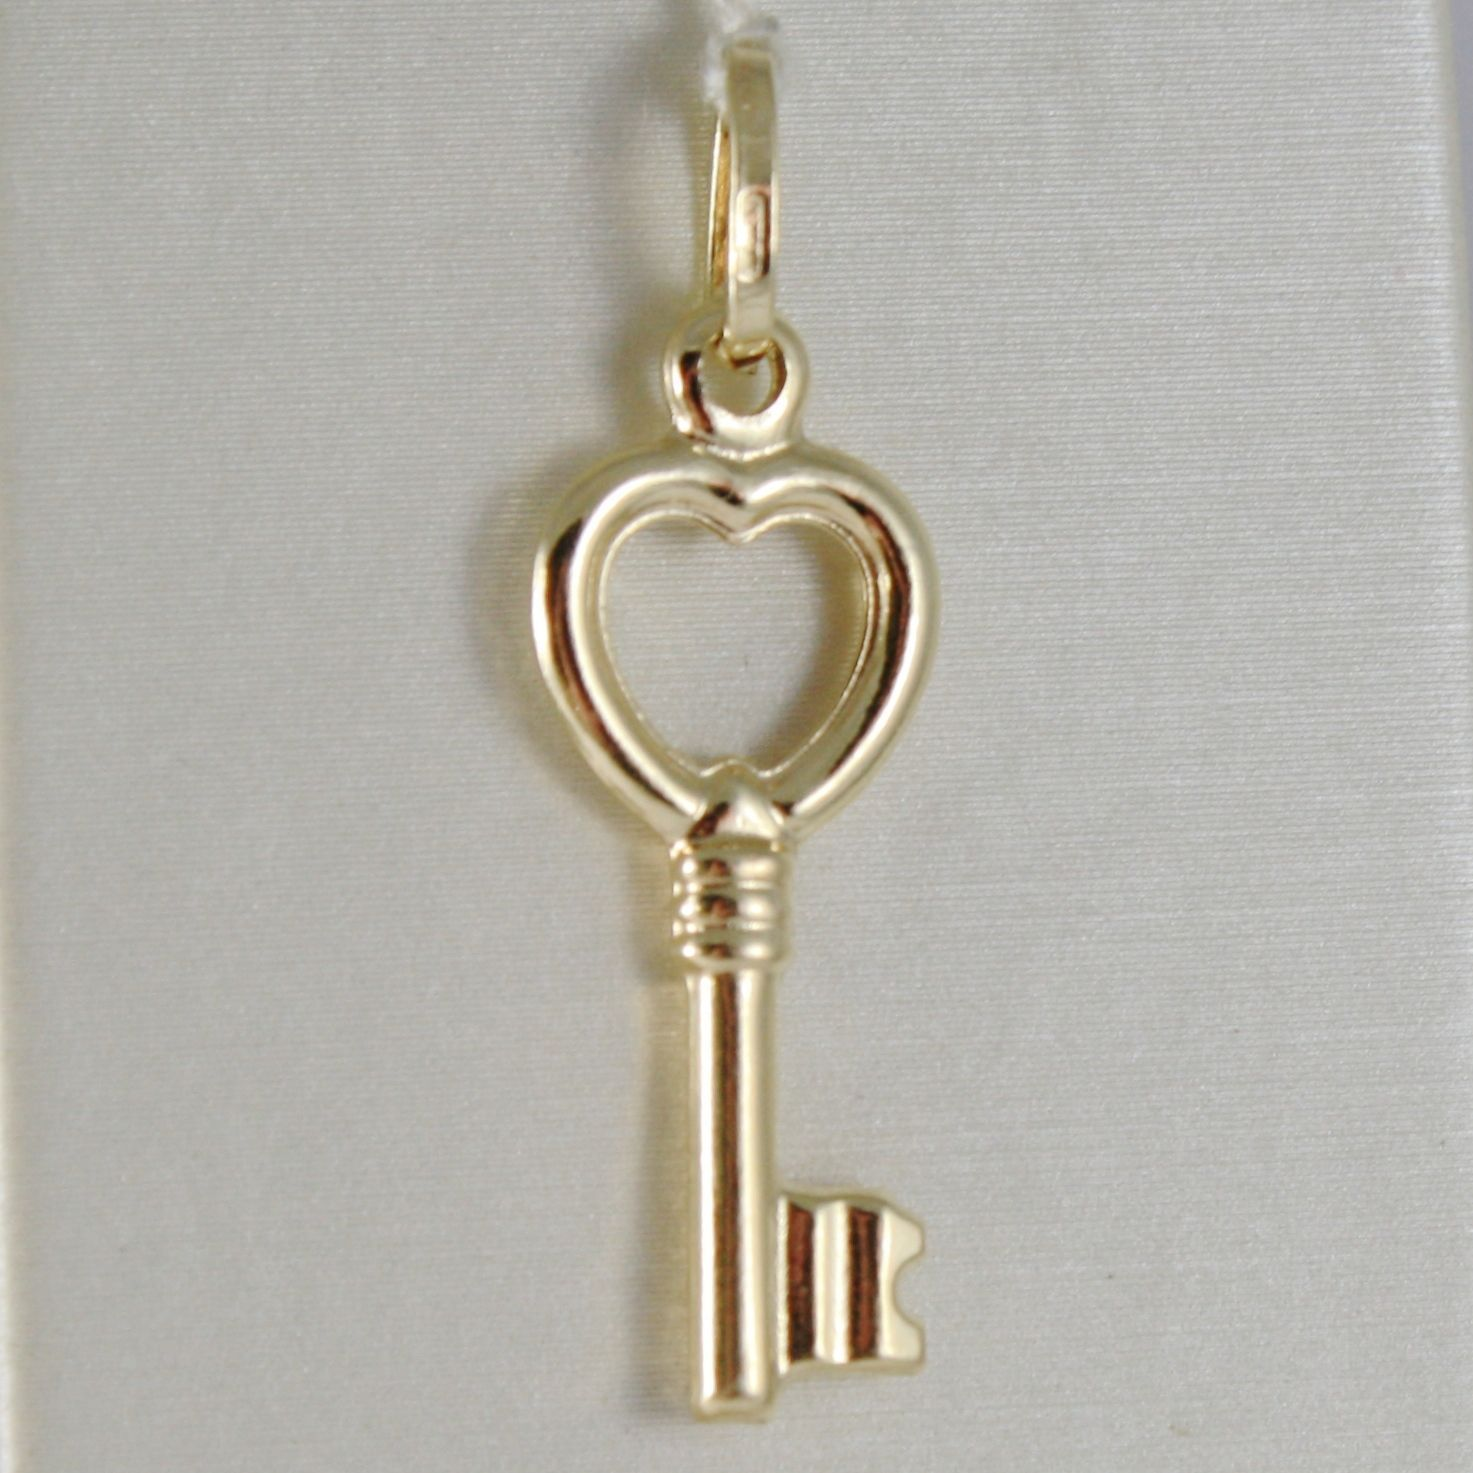 18K YELLOW GOLD KEY HEART LOVE PENDANT FINELY WORKED SMOOTH MADE IN ITALY